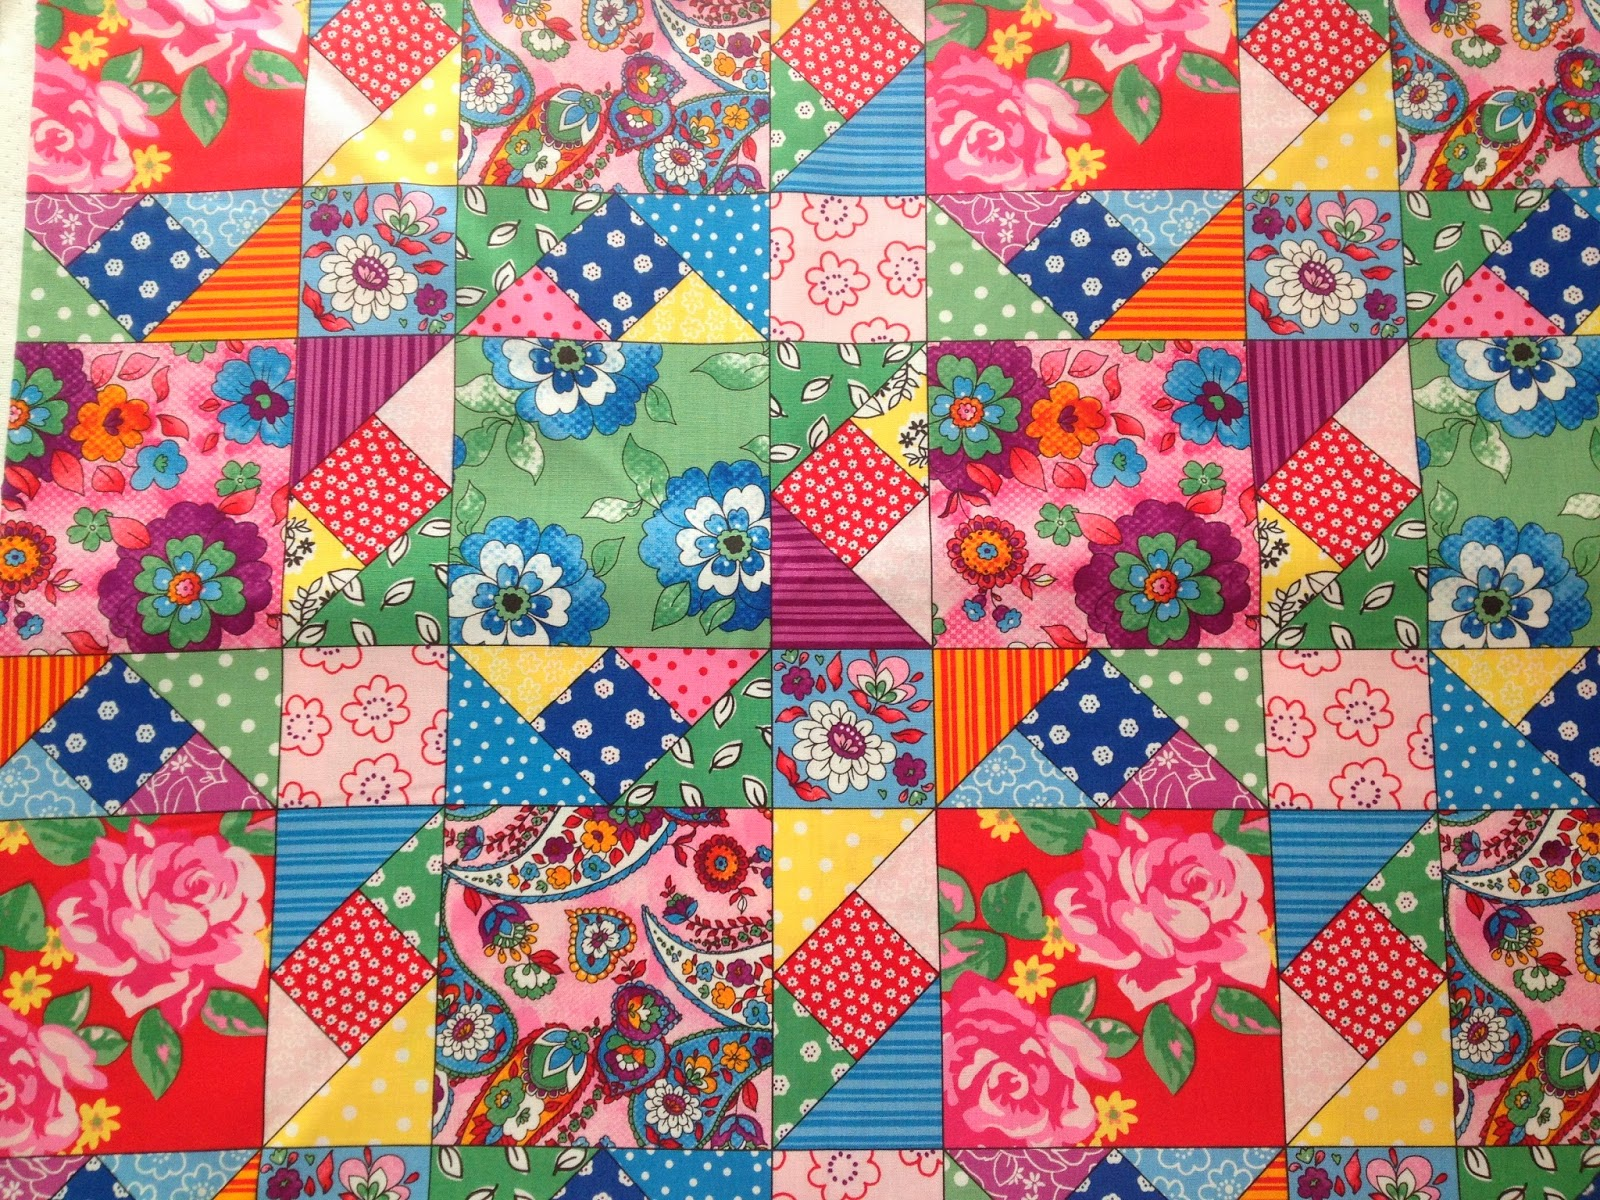 Flowers in the Window: Quilting Bee Patchwork Fabric